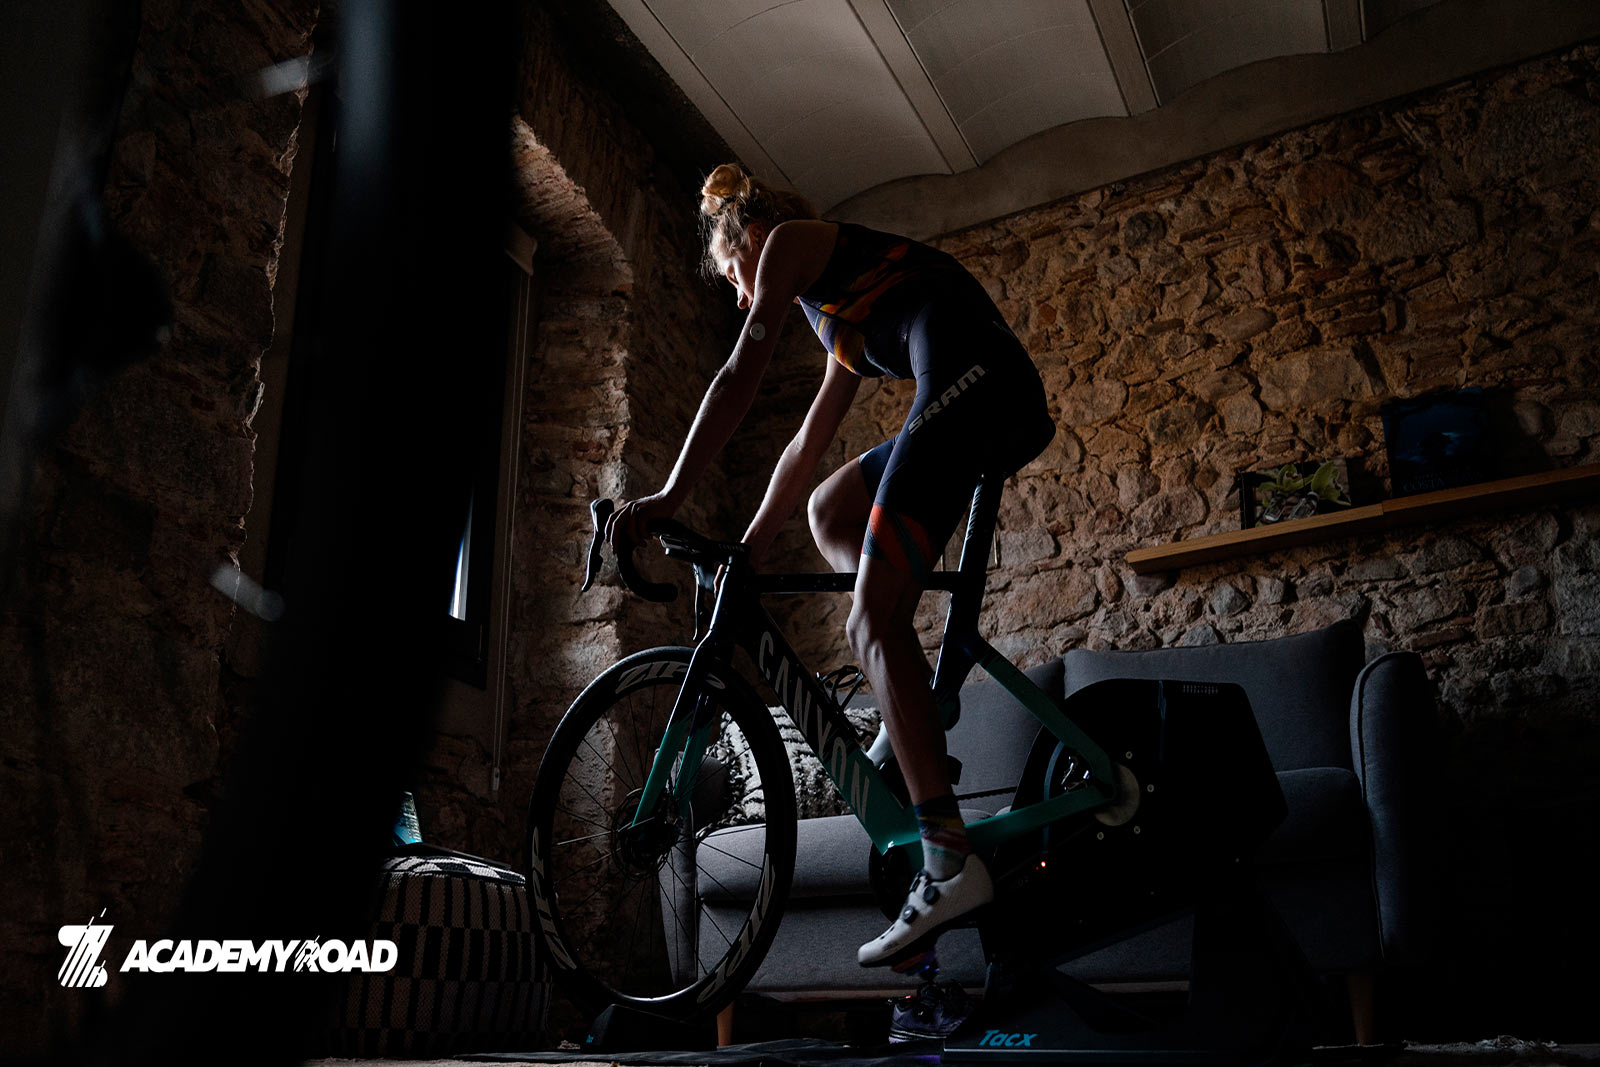 Zwift Academy female rider dressed in Canyon SRAM